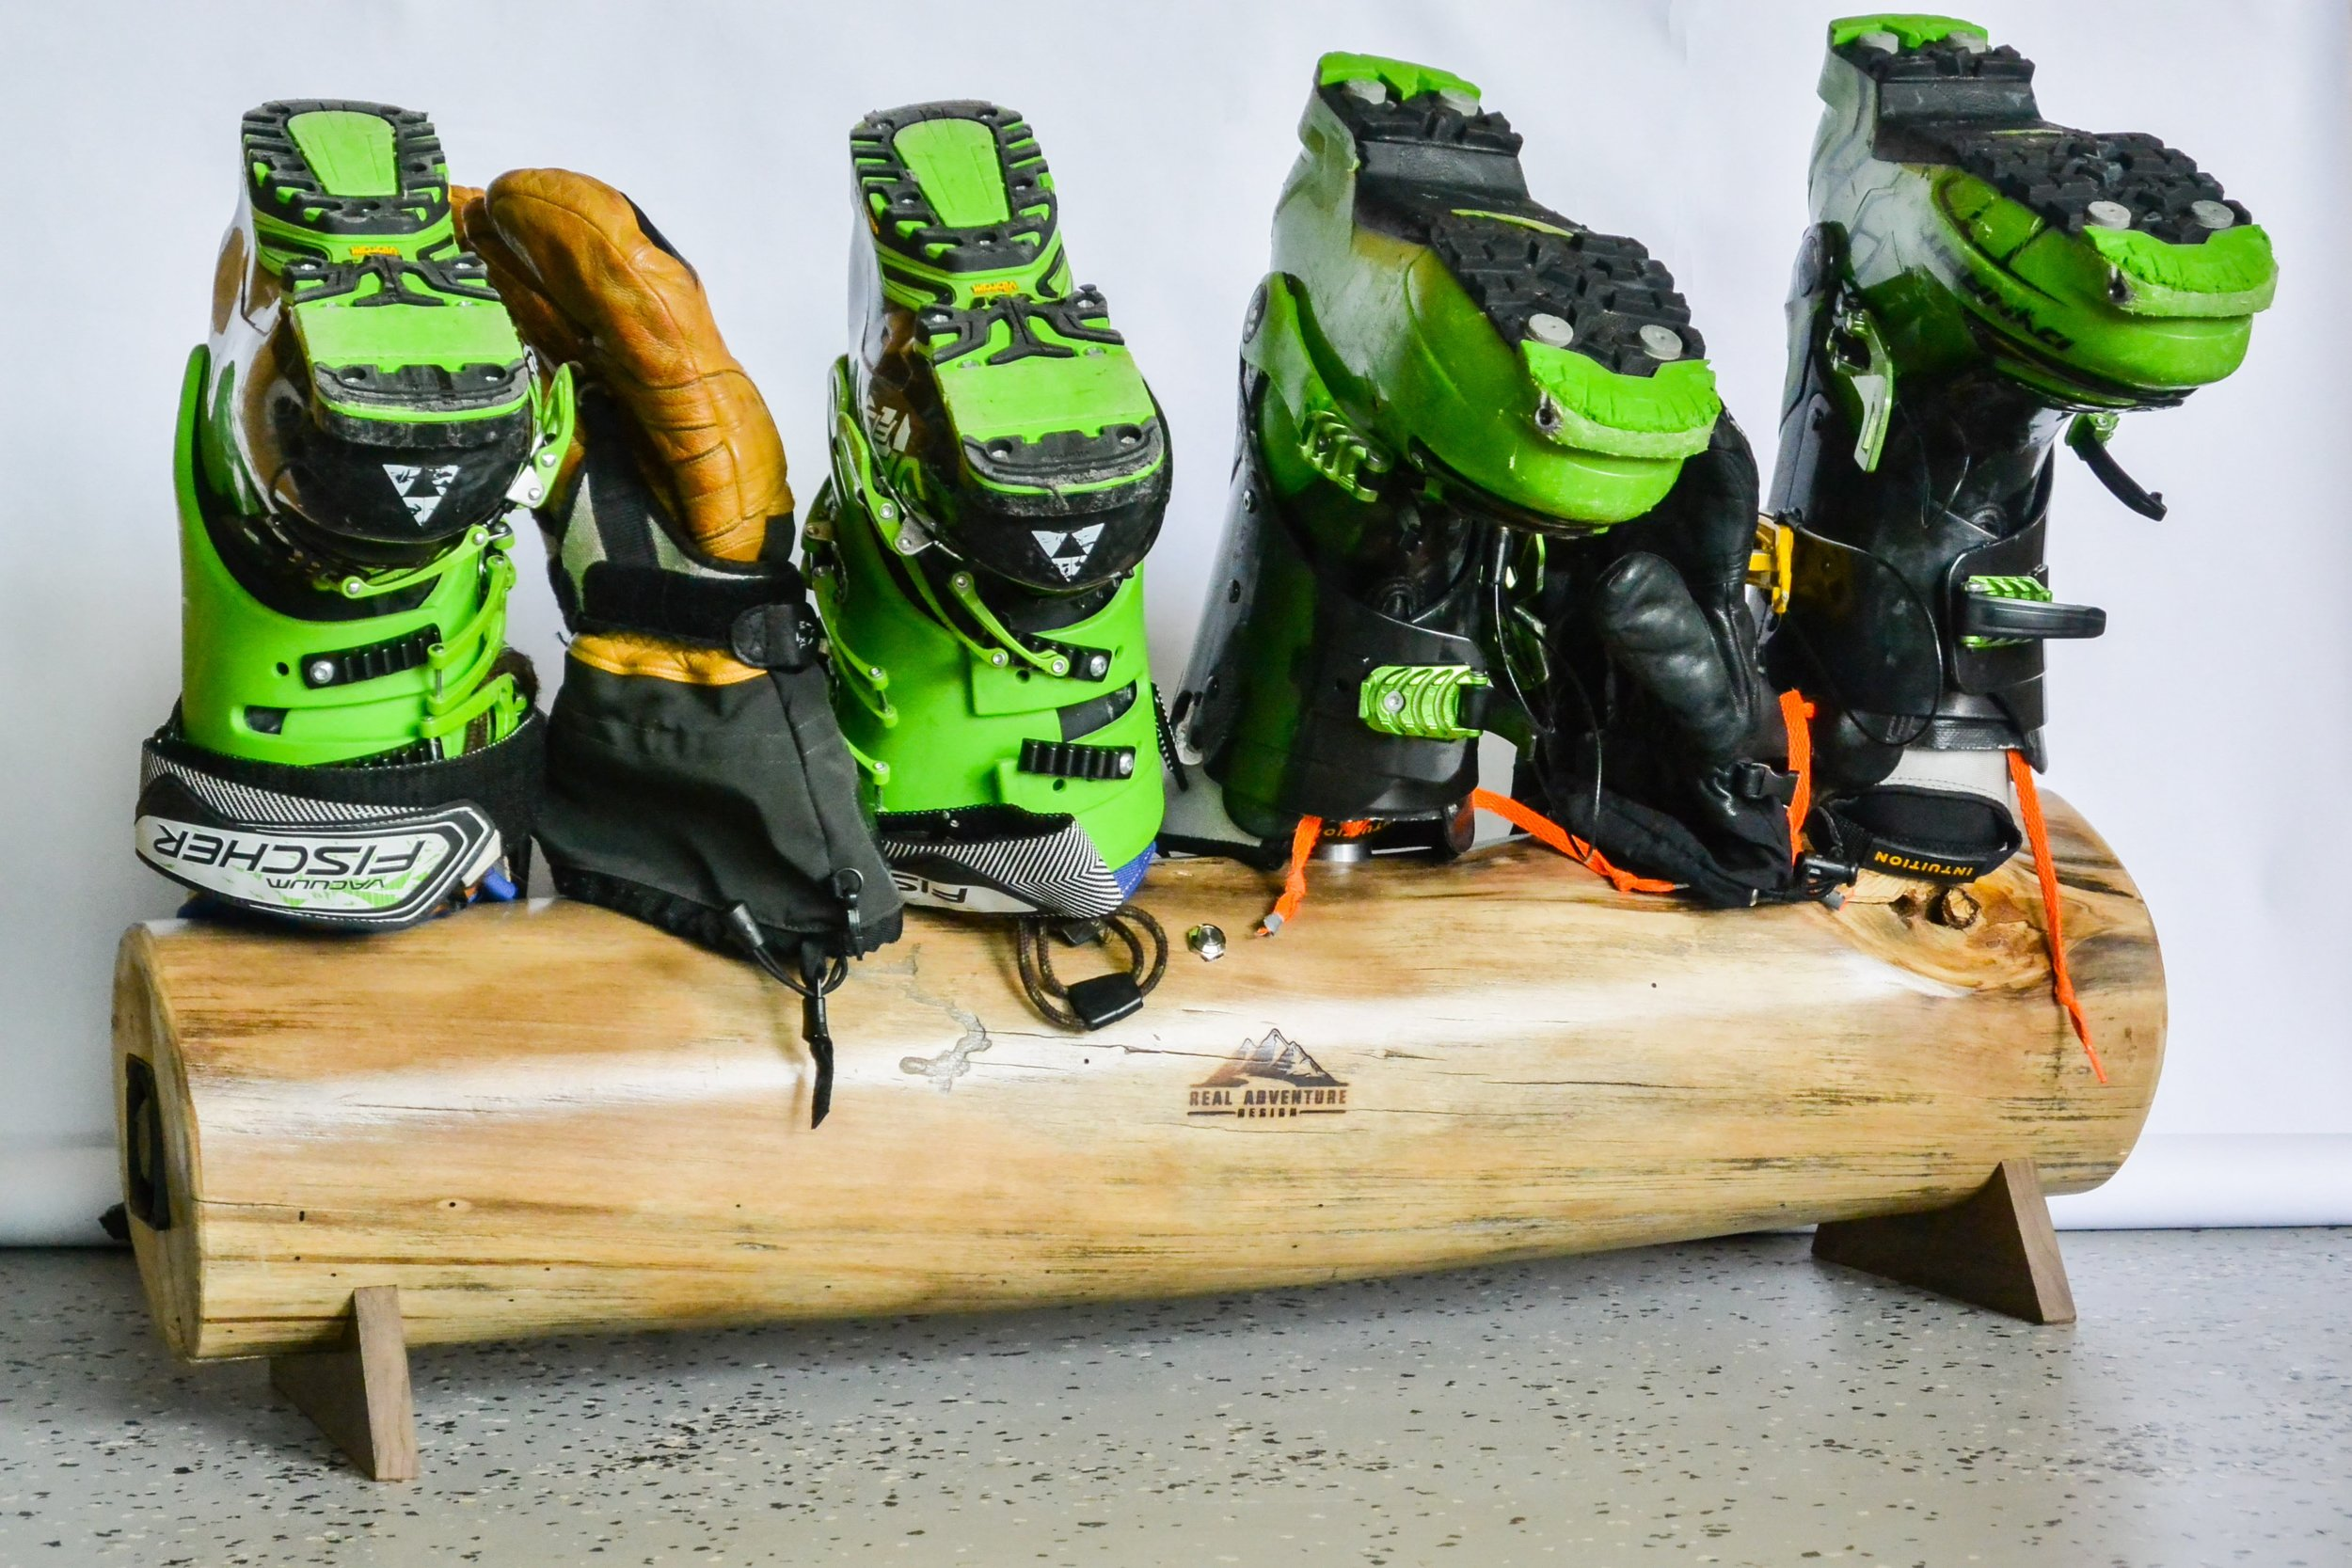 2 pairs of skis and boots fit nicely.